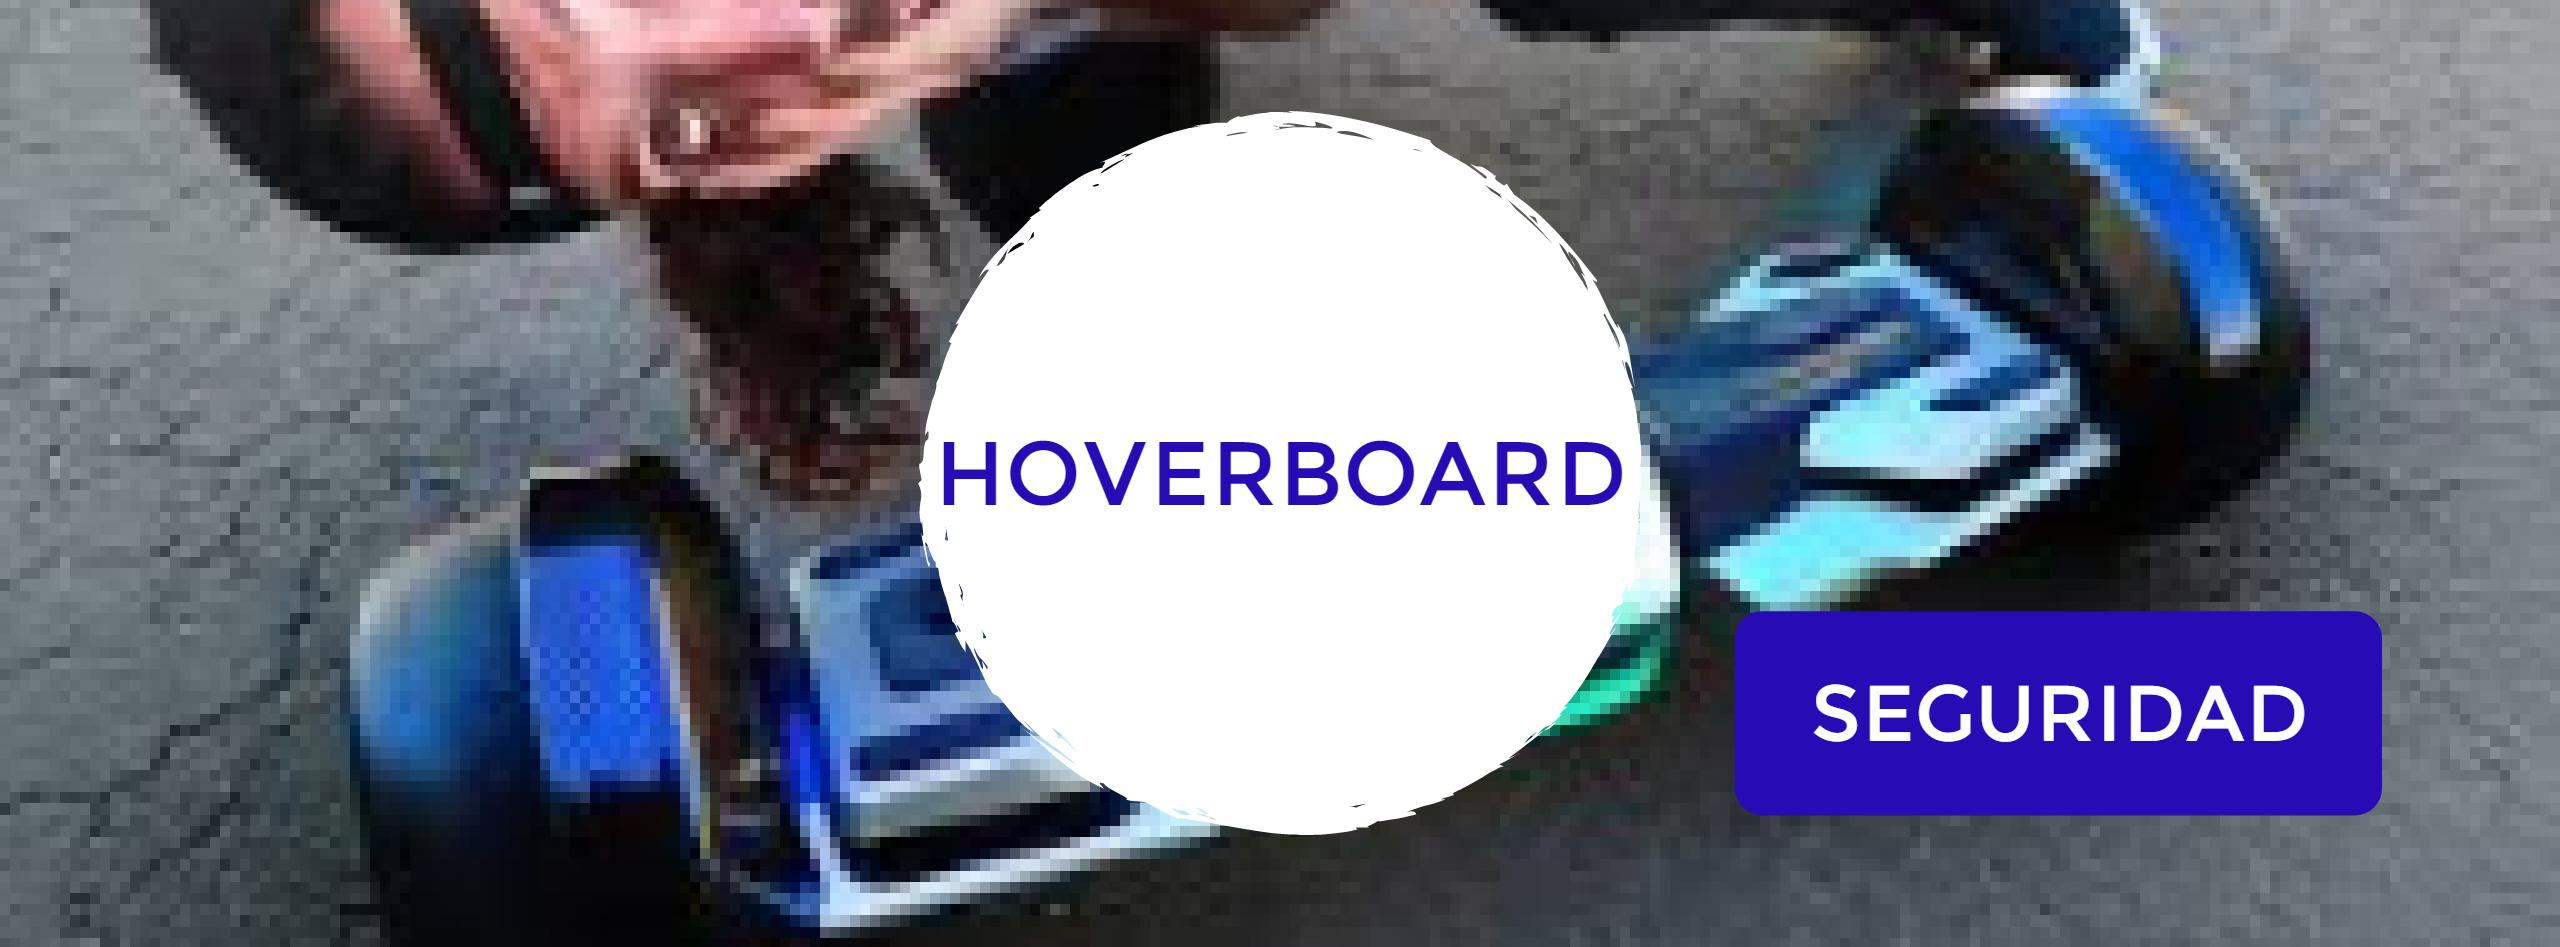 - Hoverboard